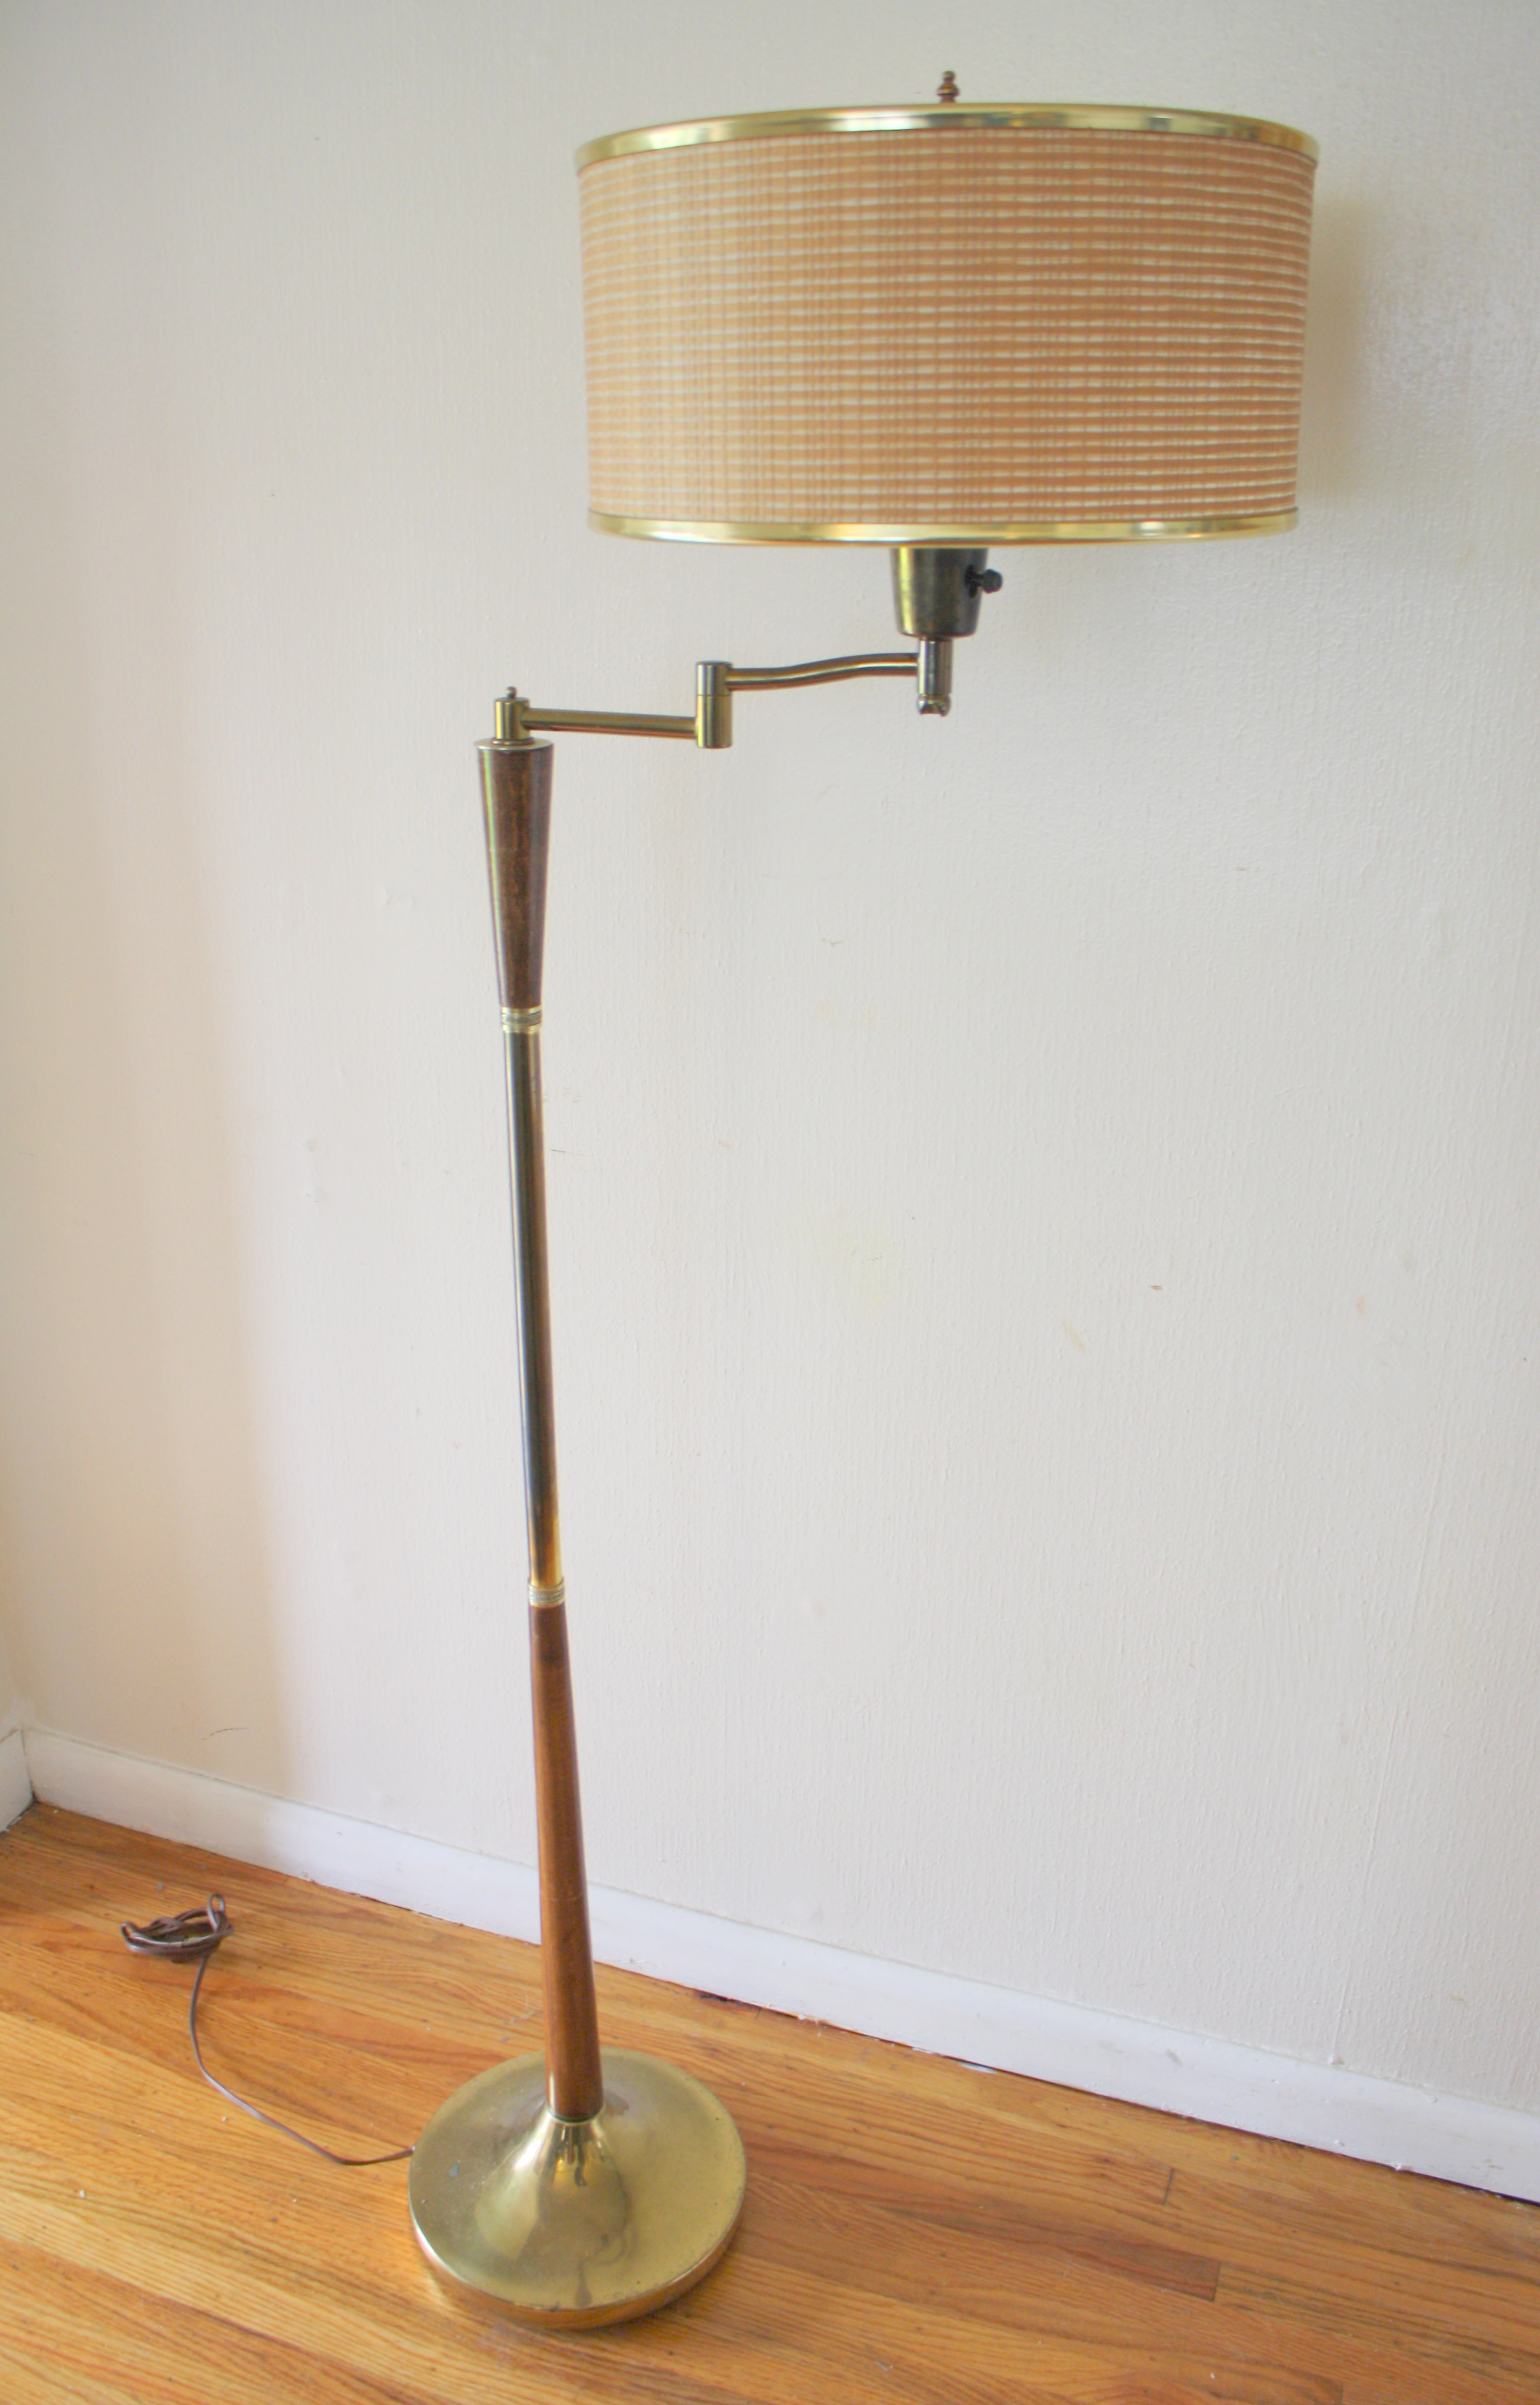 halogen arm optical light magnifying home led brushed under walmart long torch bronze chrome size floor depot outdoor lights tor magnifier swing deals ight feet flexible pole brass standing in antique torchiere of glass adjustable lens stand lamps affordable lamp nickel full lighting reading multi with